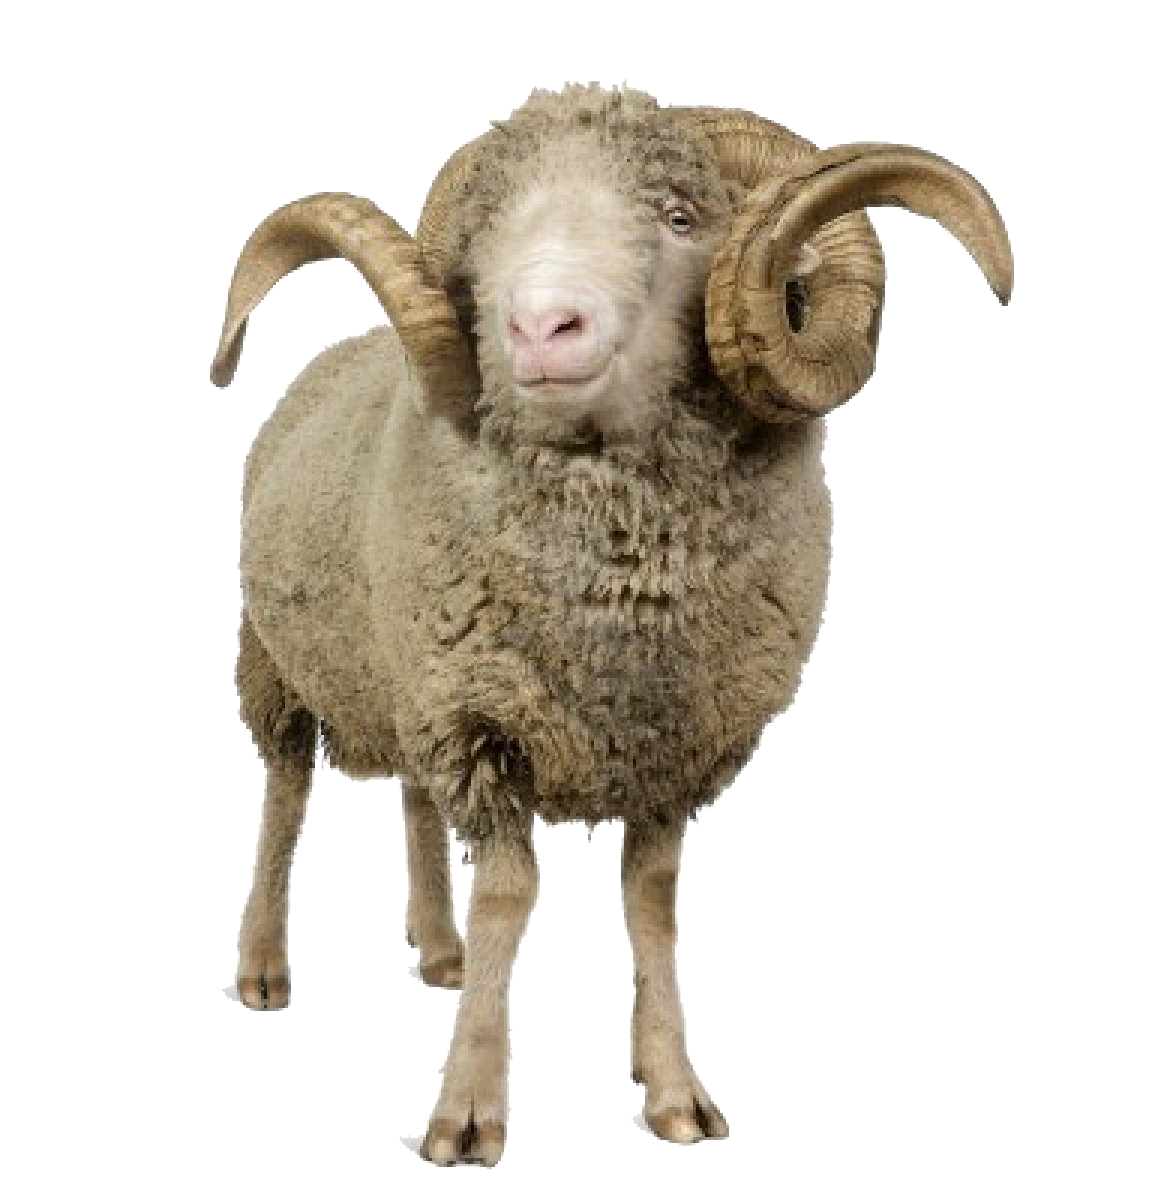 png background sheep transparent icons and #20315